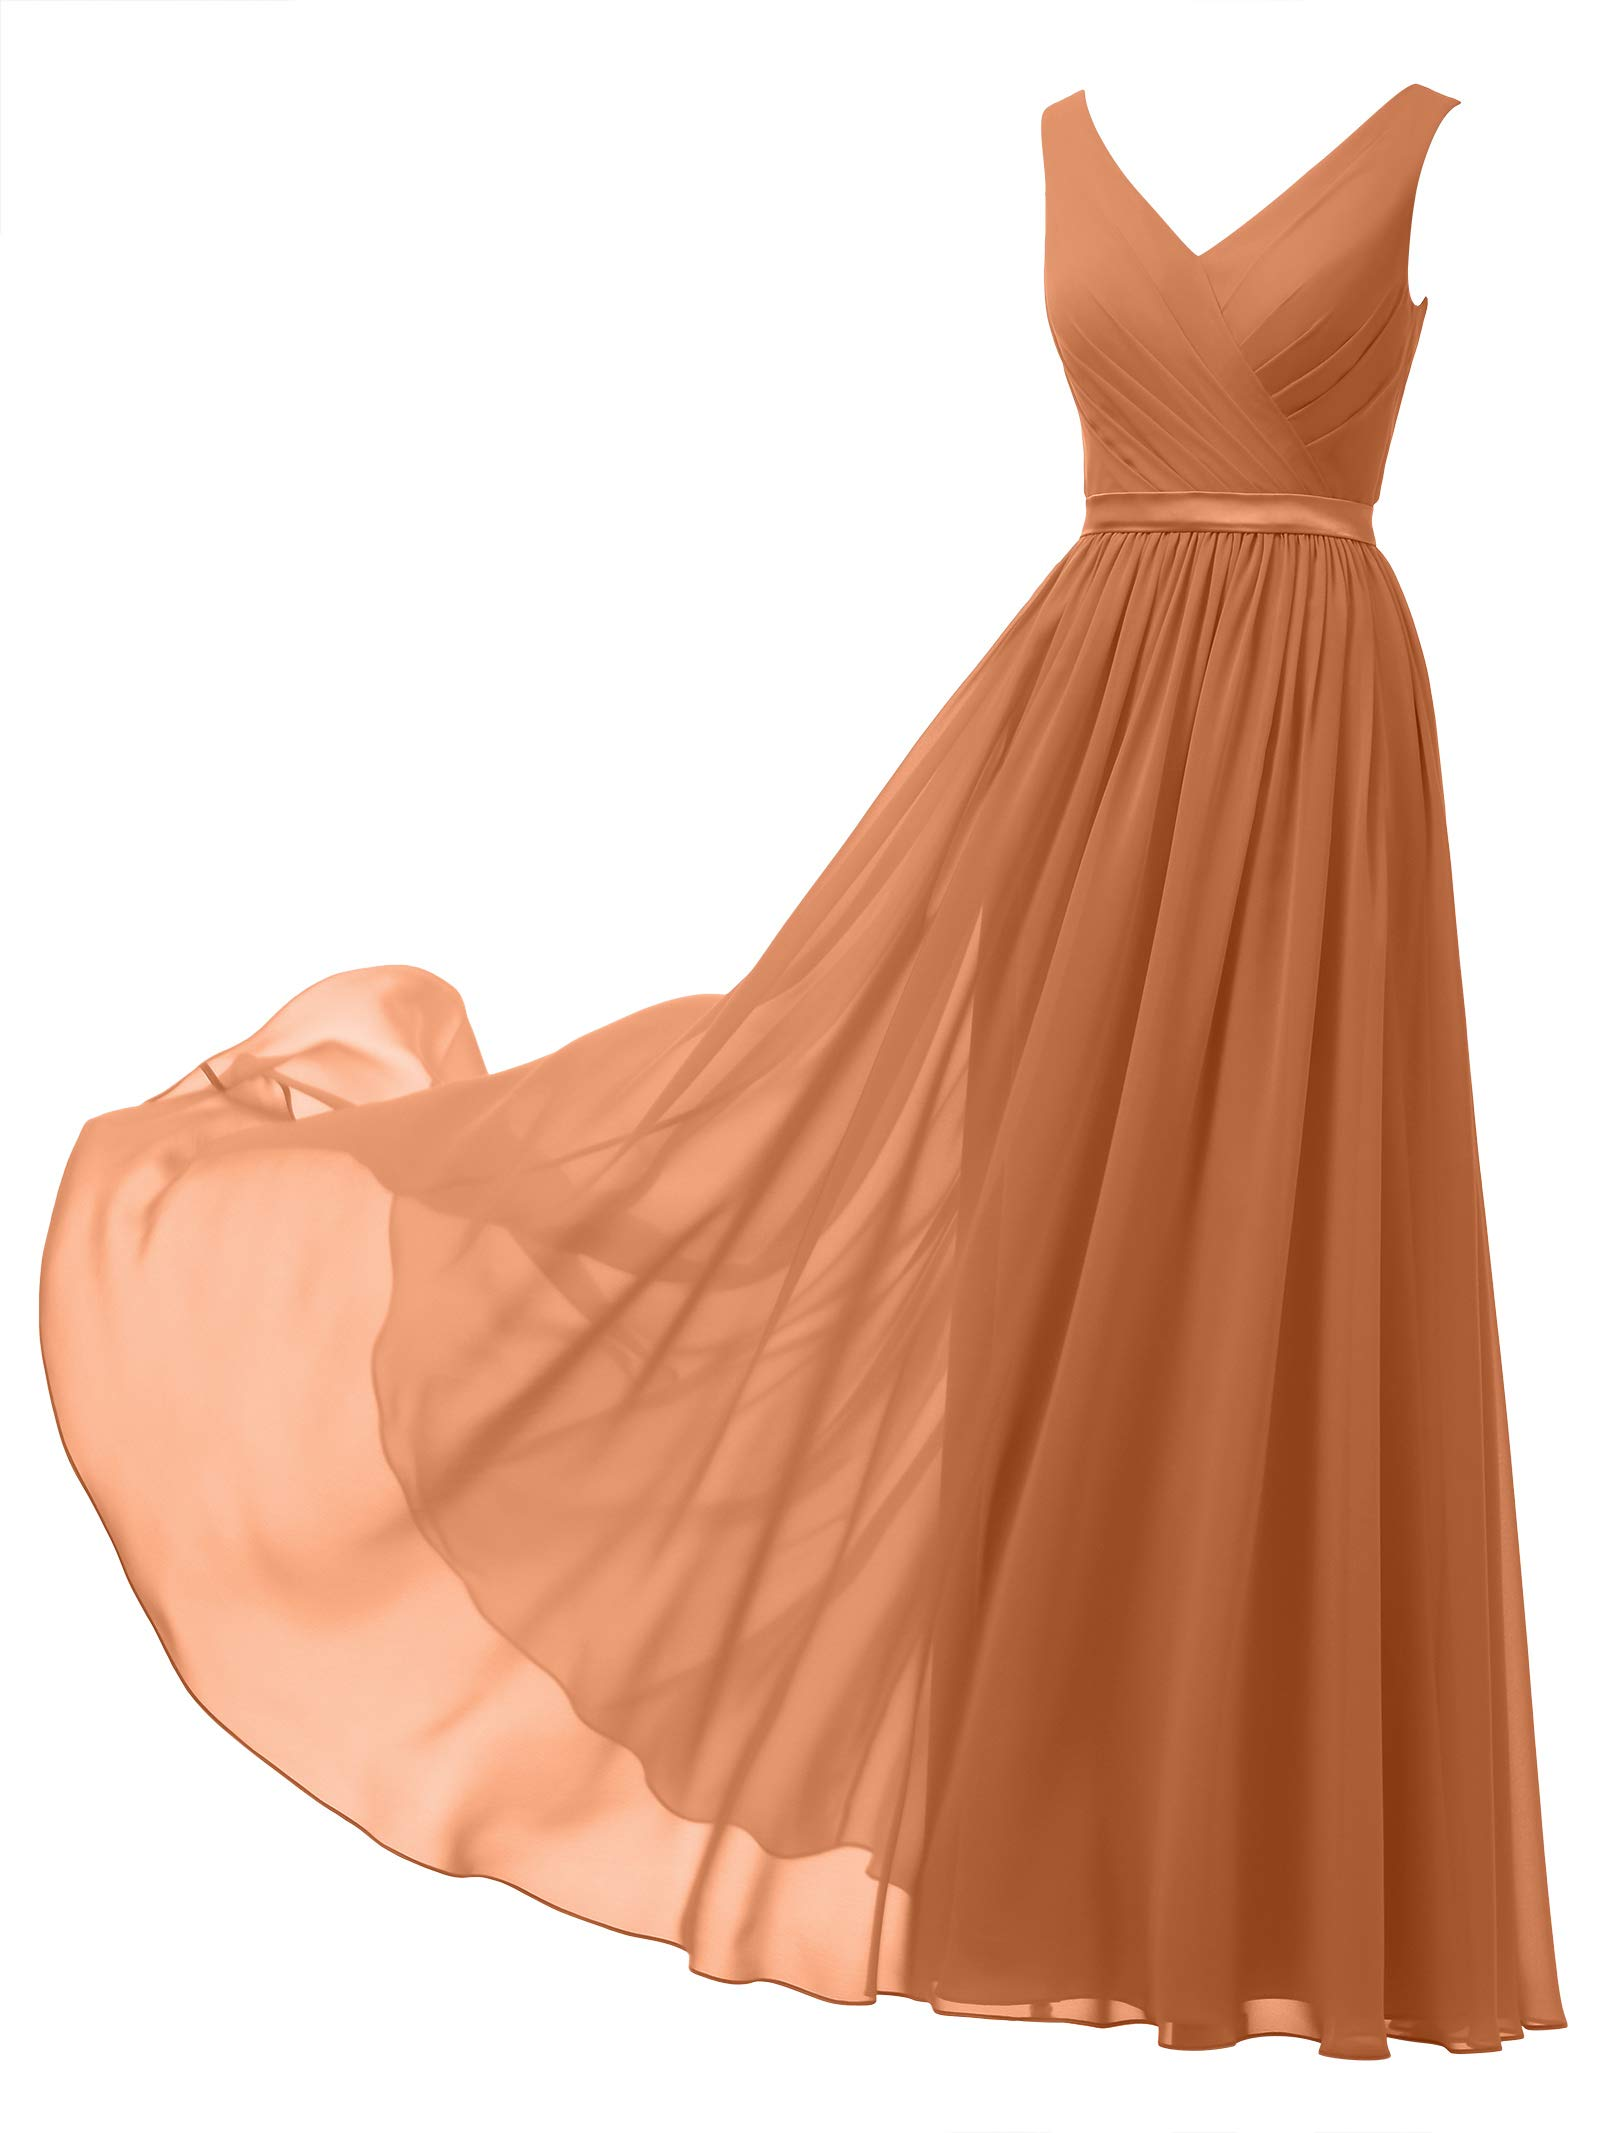 Alicepub V-Neck Chiffon Plus Size Bridesmaid Dress Long Party Prom Evening  Dress Sleeveless, Burnt Orange, US24